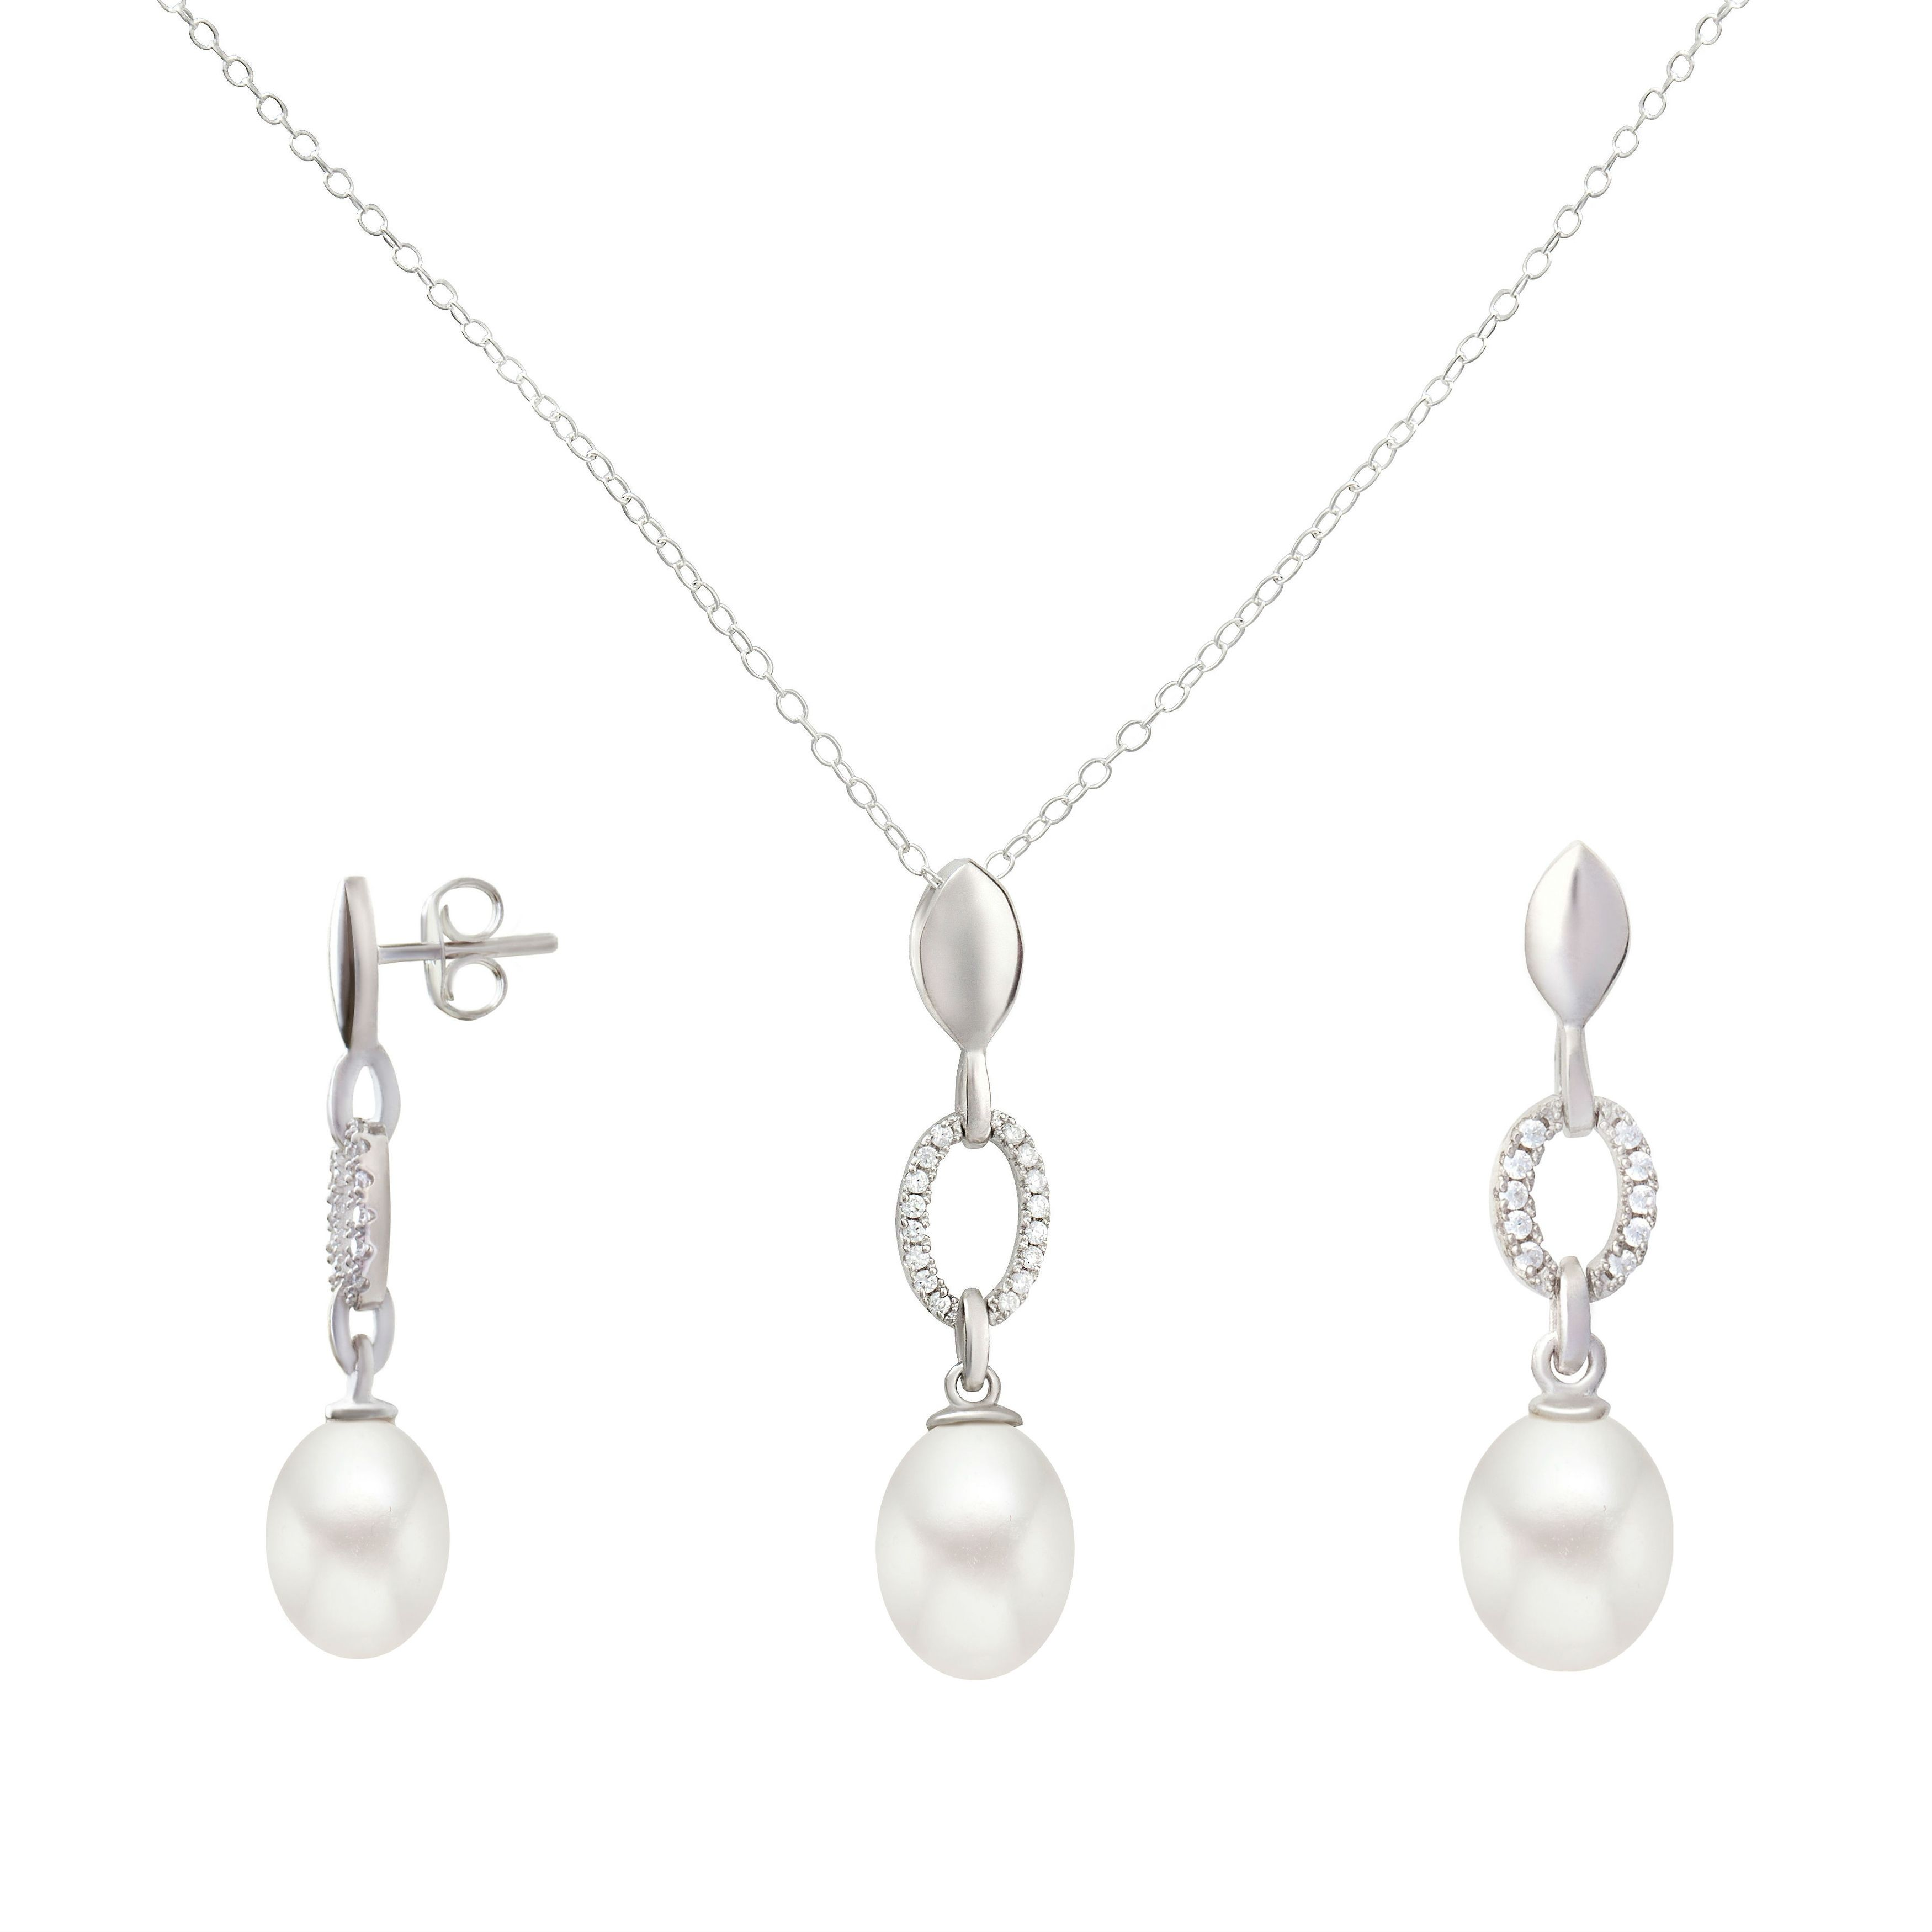 GIG Jewels Sterling White Cultured Freshwater Pearl and CZ Gemstones Necklace Earrings Jewelry set